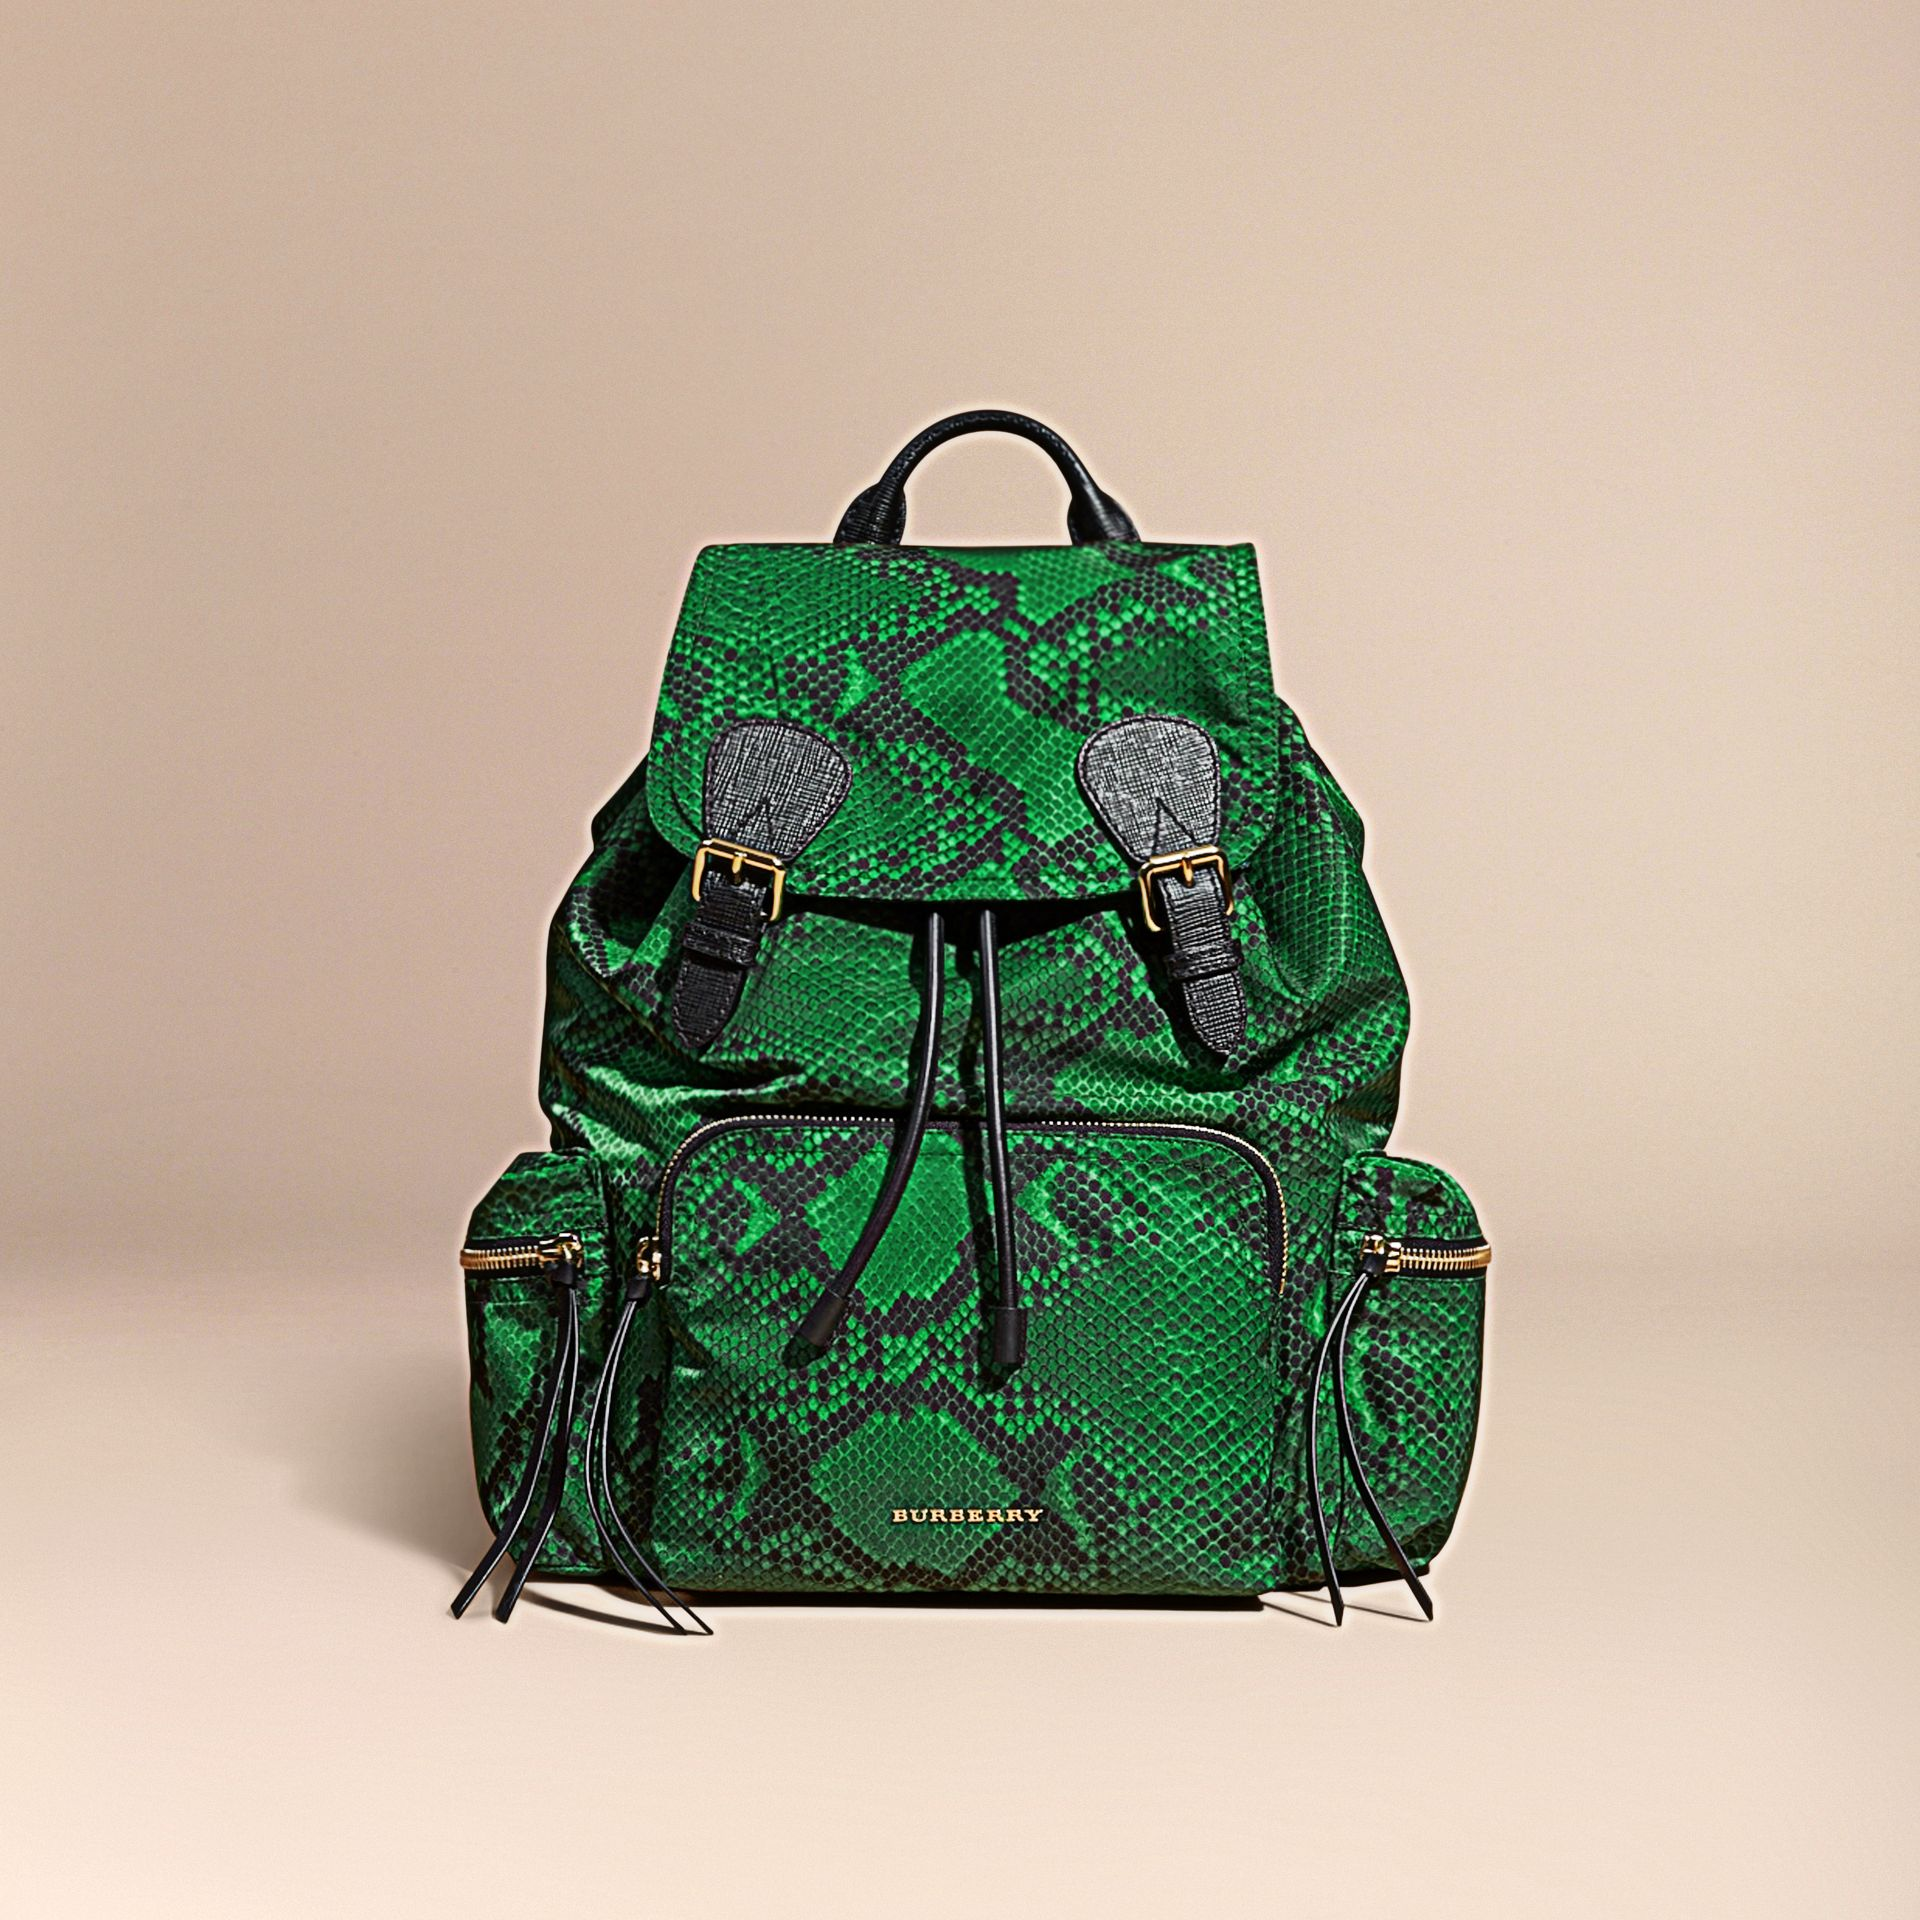 Green The Large Rucksack in Python Print Nylon and Leather Green - gallery image 8